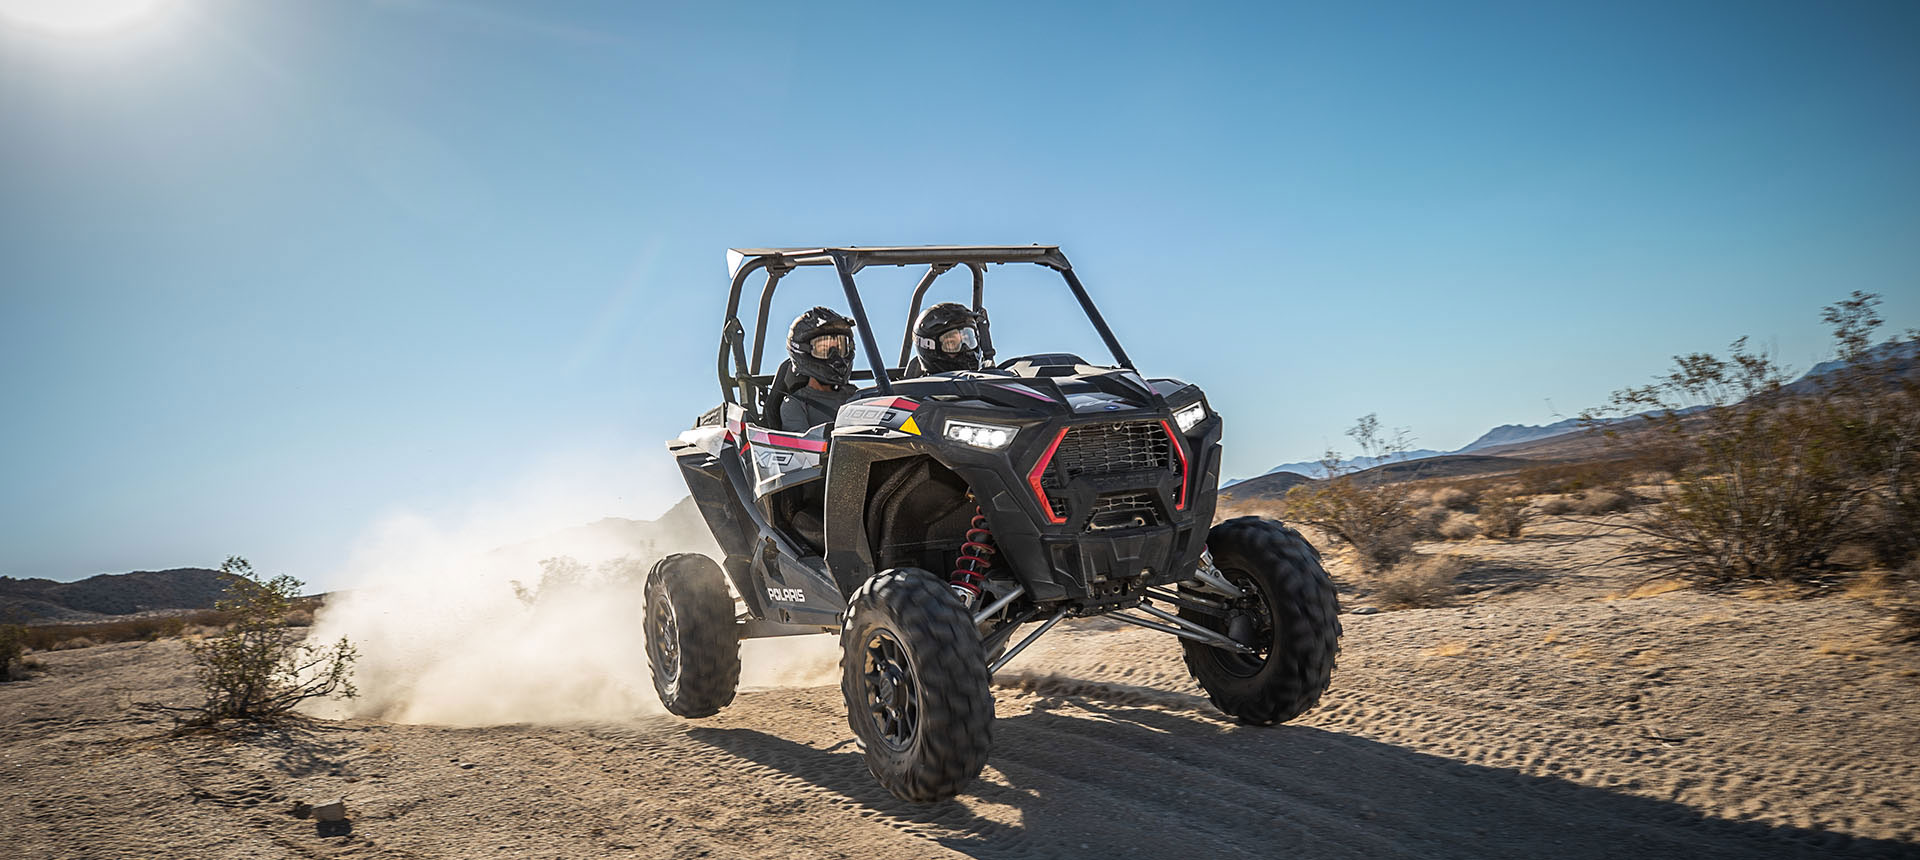 2019 Polaris RZR XP 1000 in Afton, Oklahoma - Photo 8